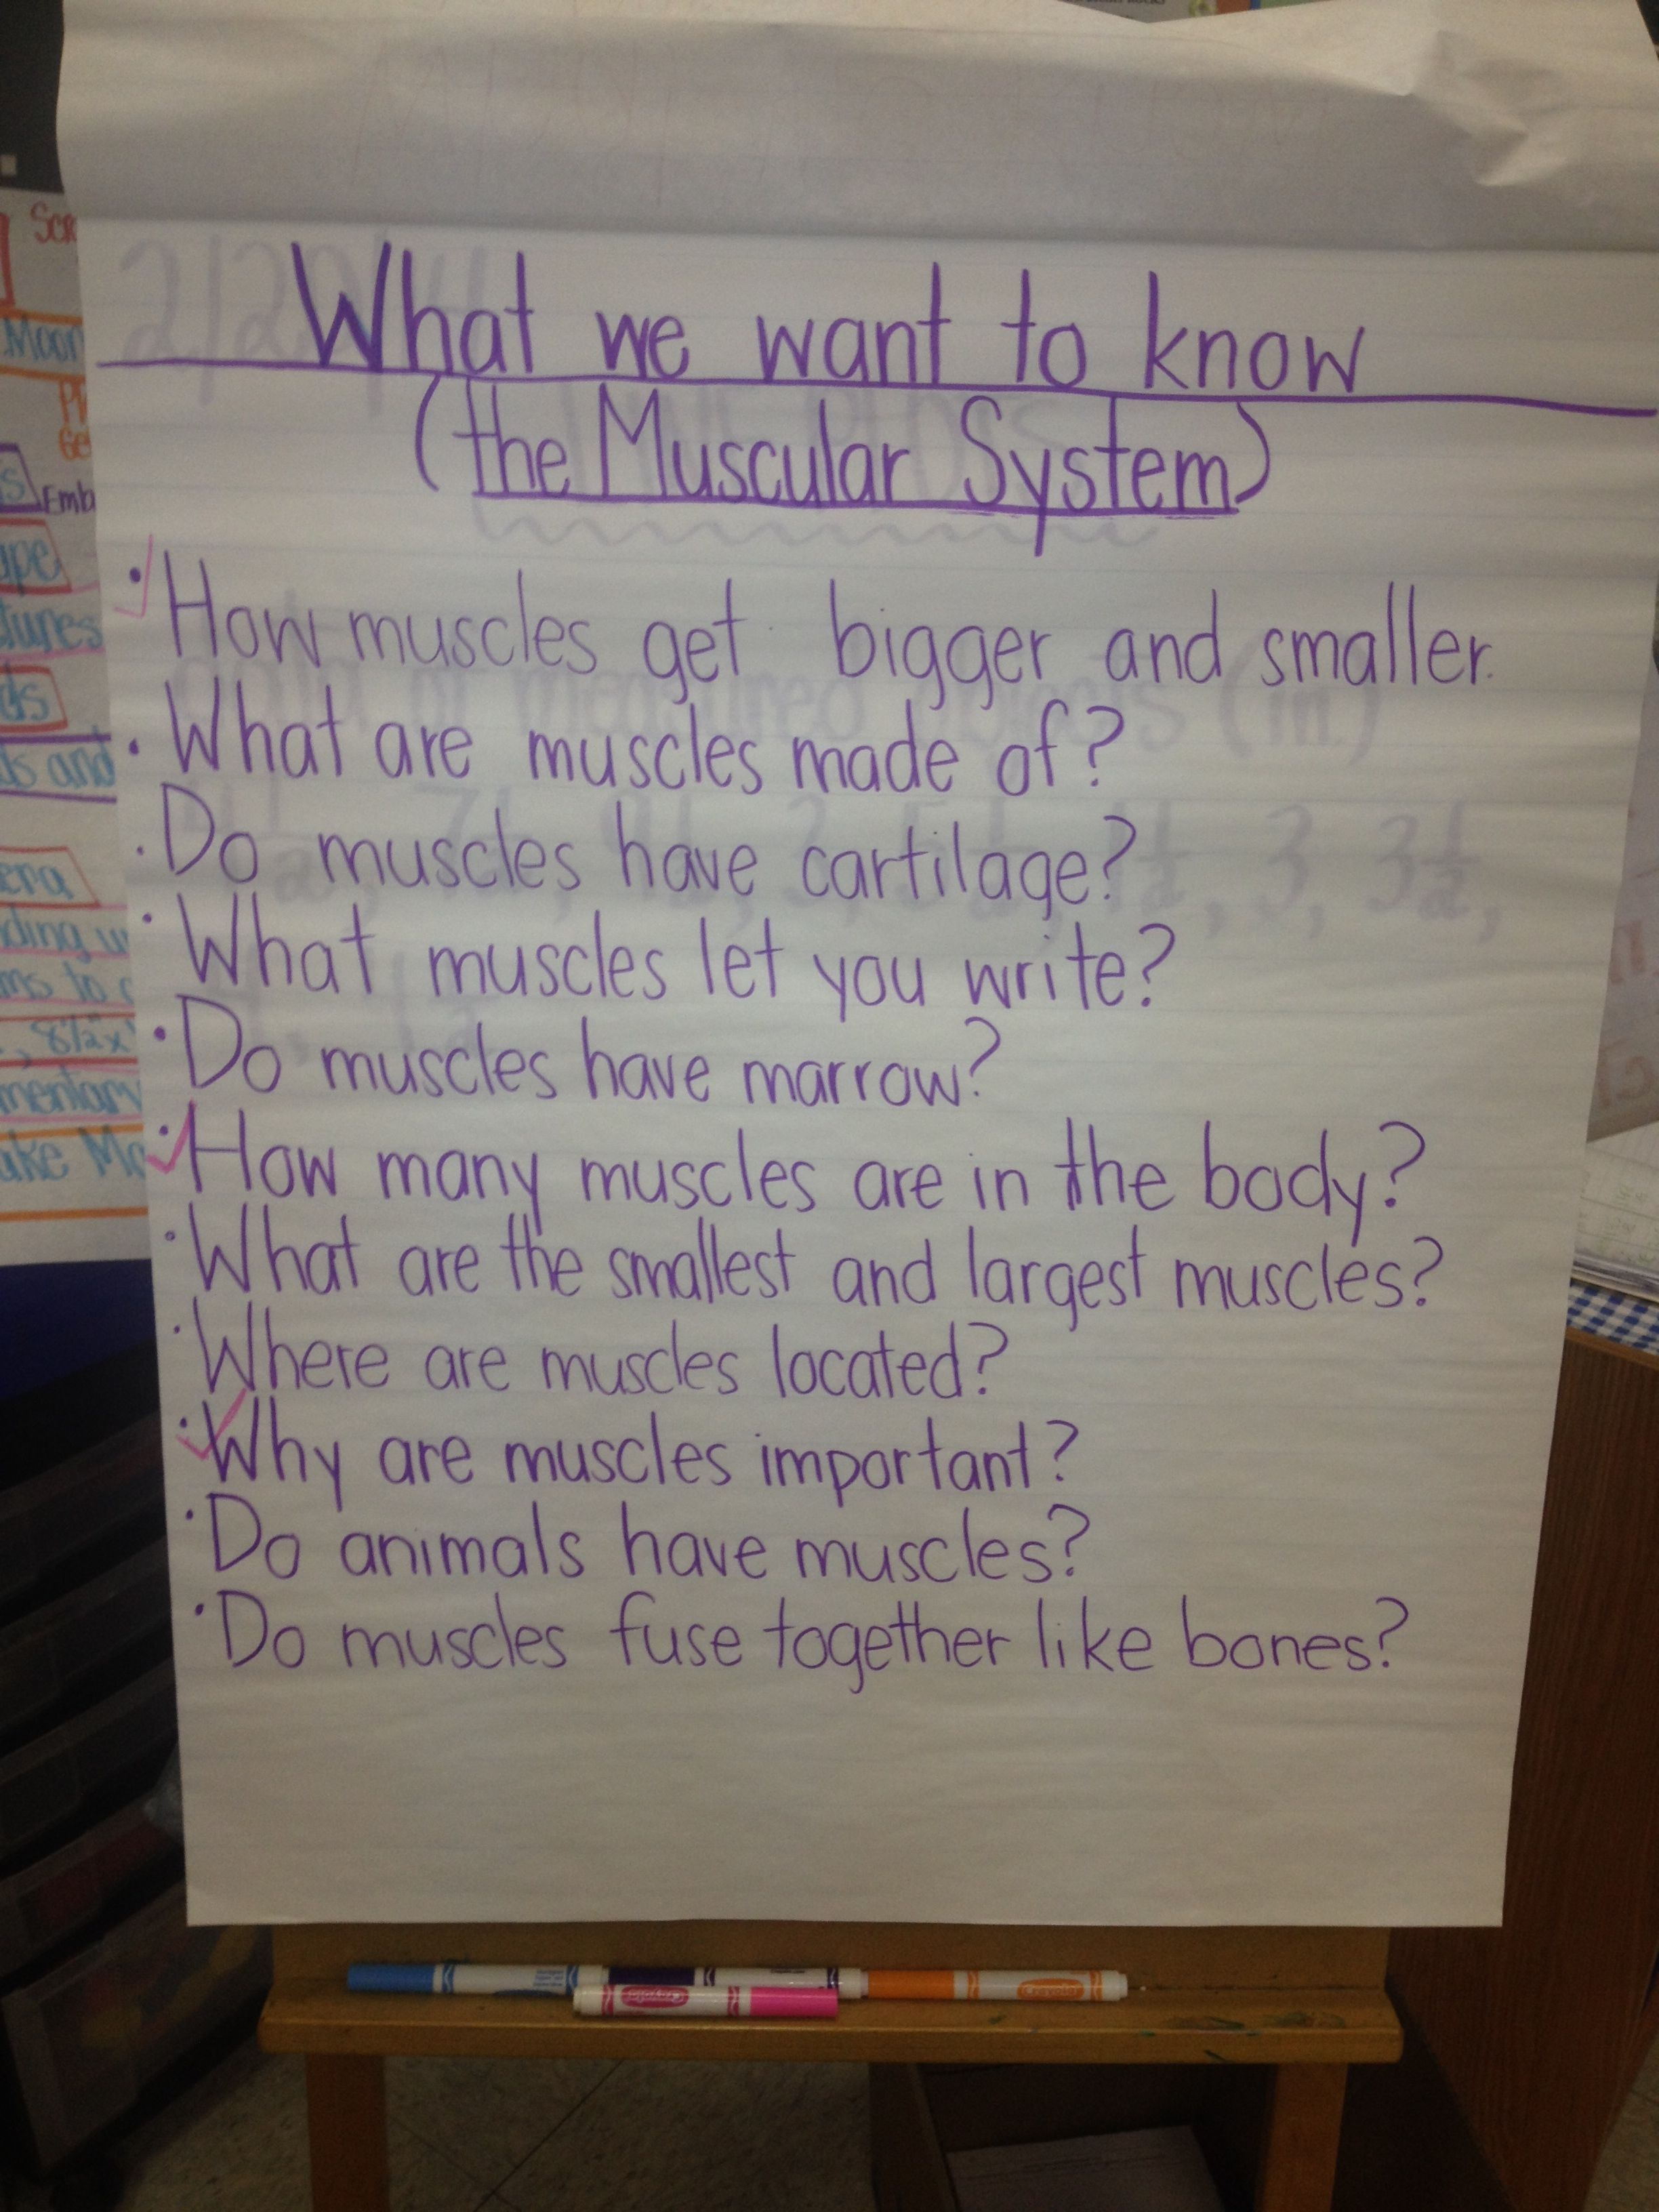 What We Want To Know About The Muscular System